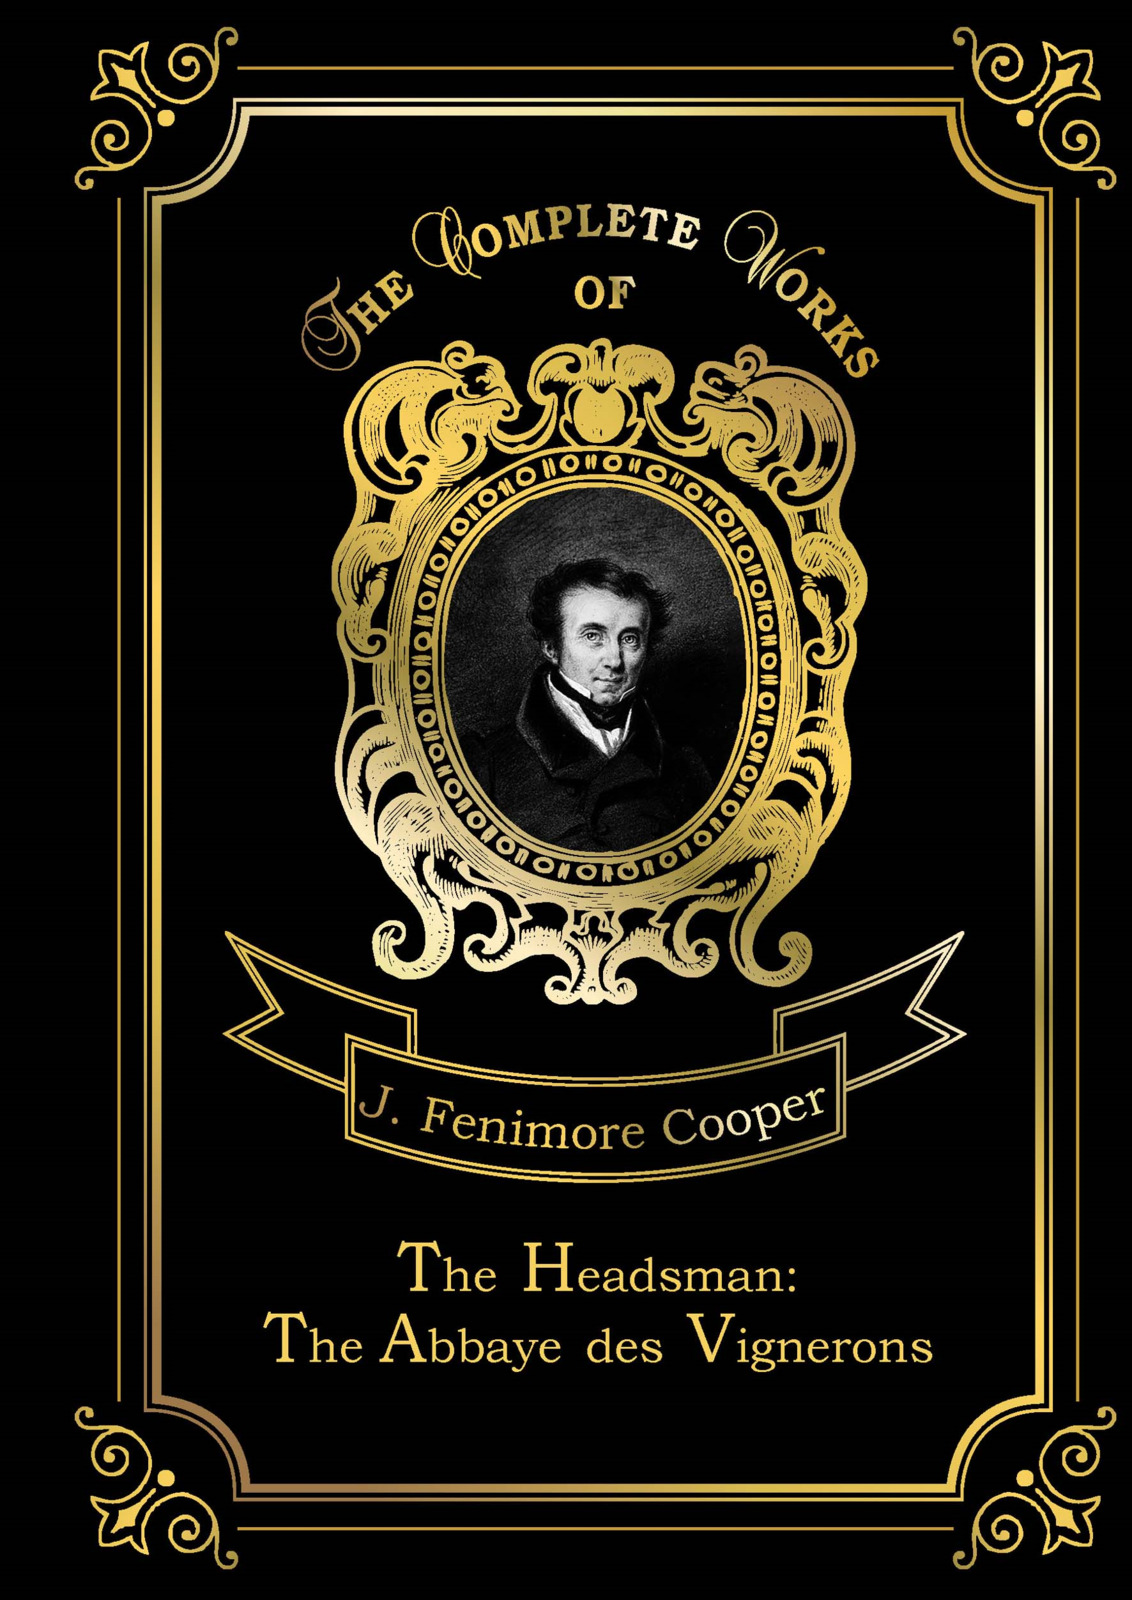 J. F. Cooper The Headsman. The Abbaye des Vignerons land of savagery land of promise – the european image of the american